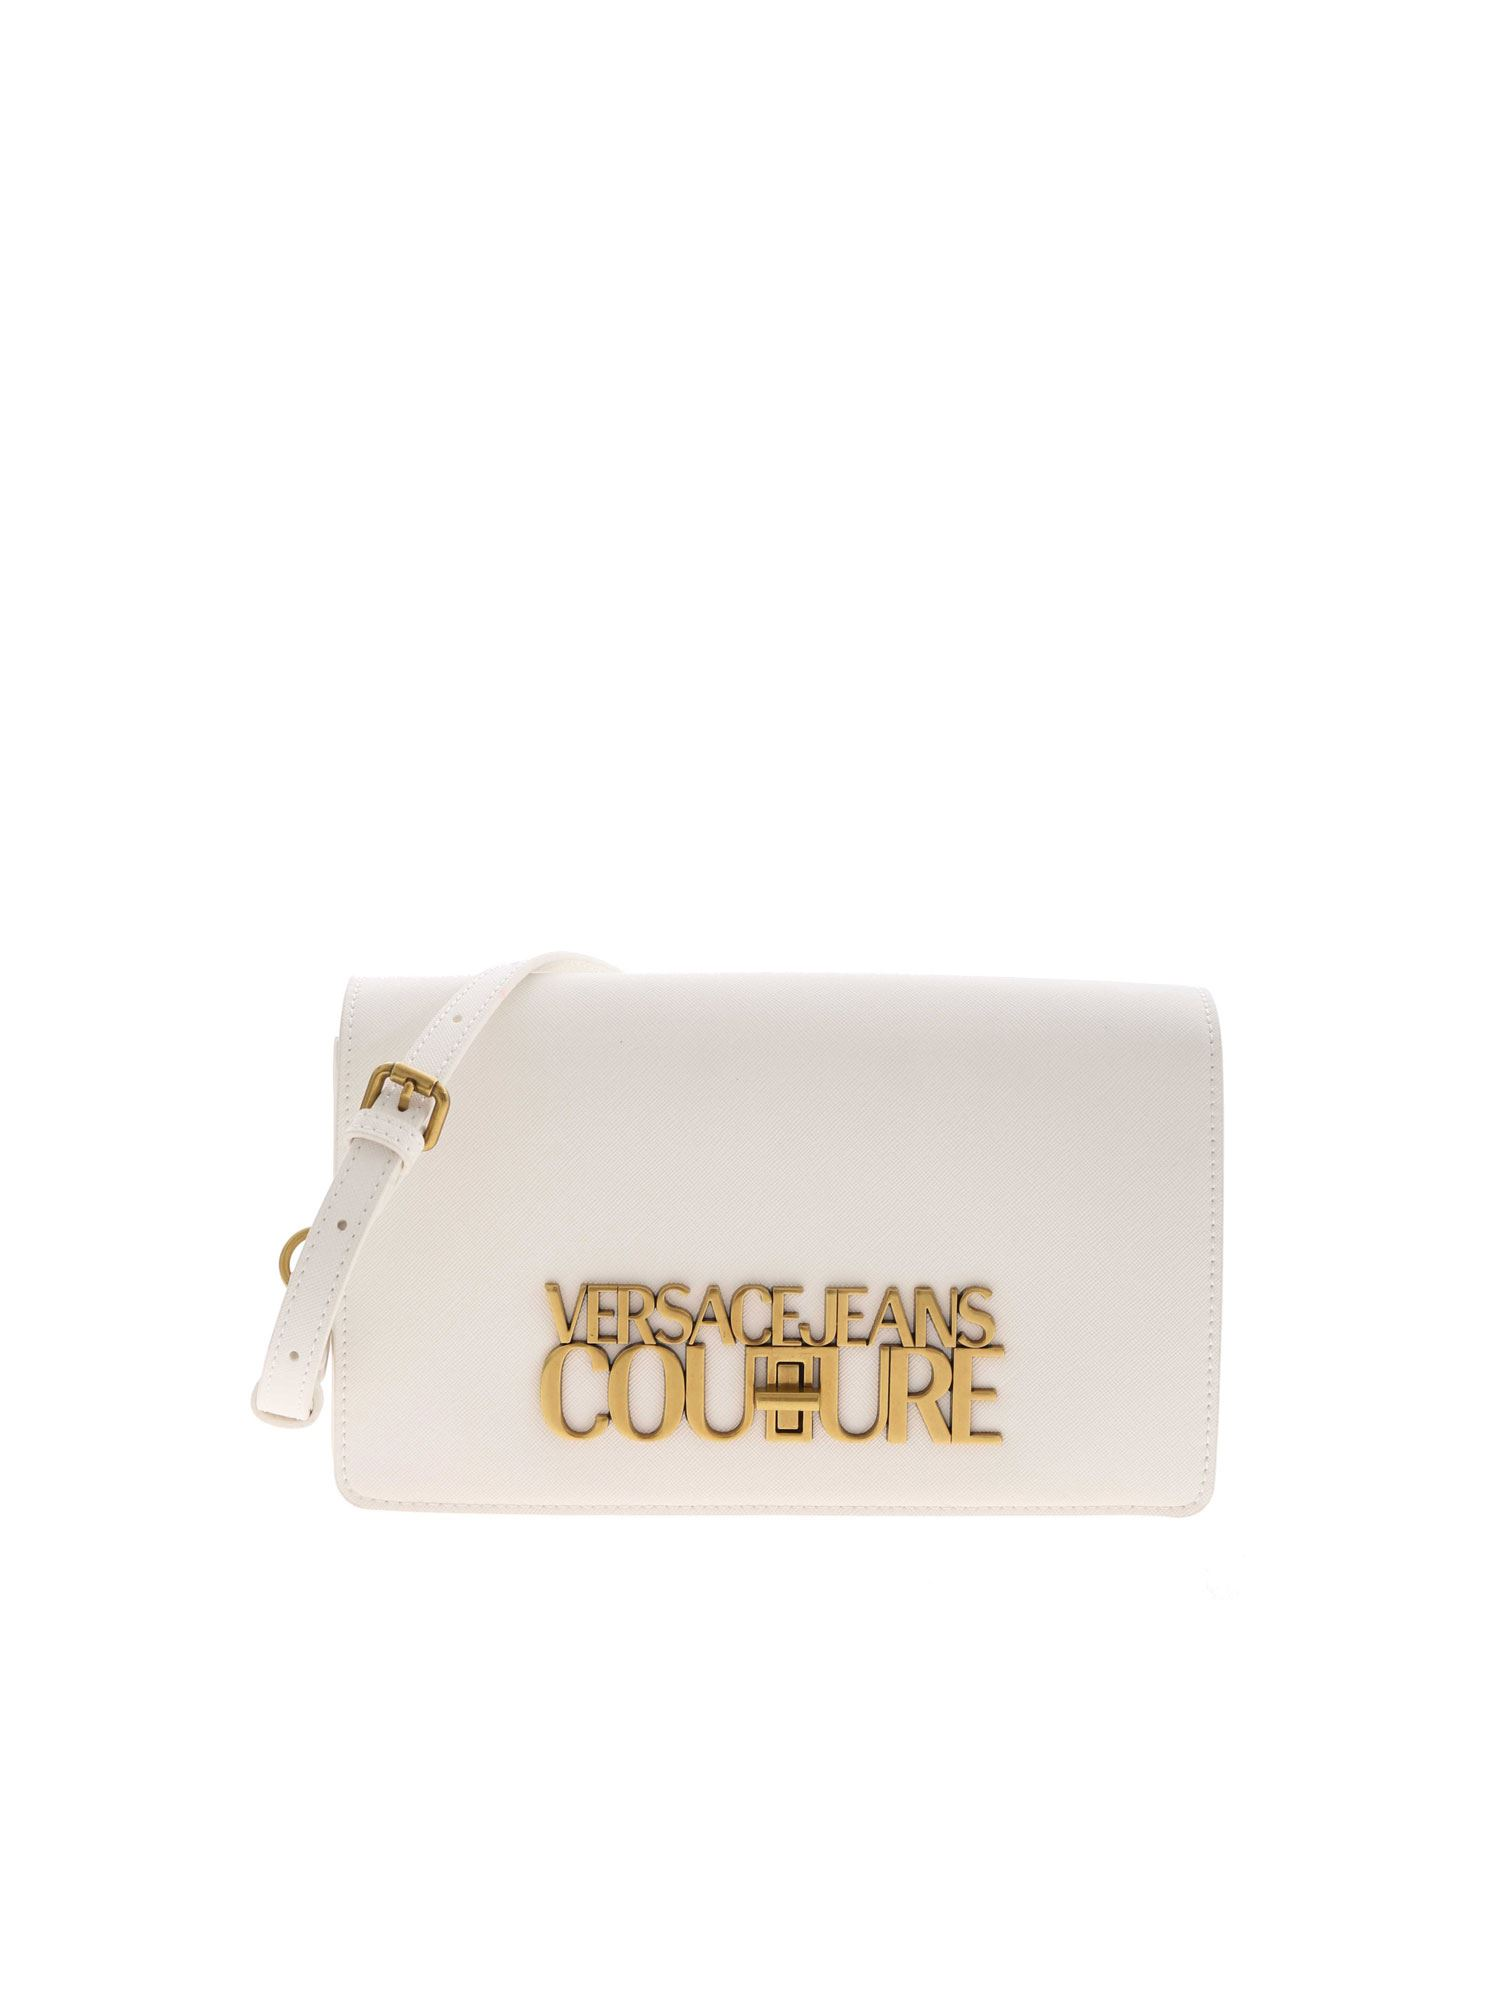 Versace Jeans Couture Crossbody bags LETTERING LOGO BAG IN WHITE